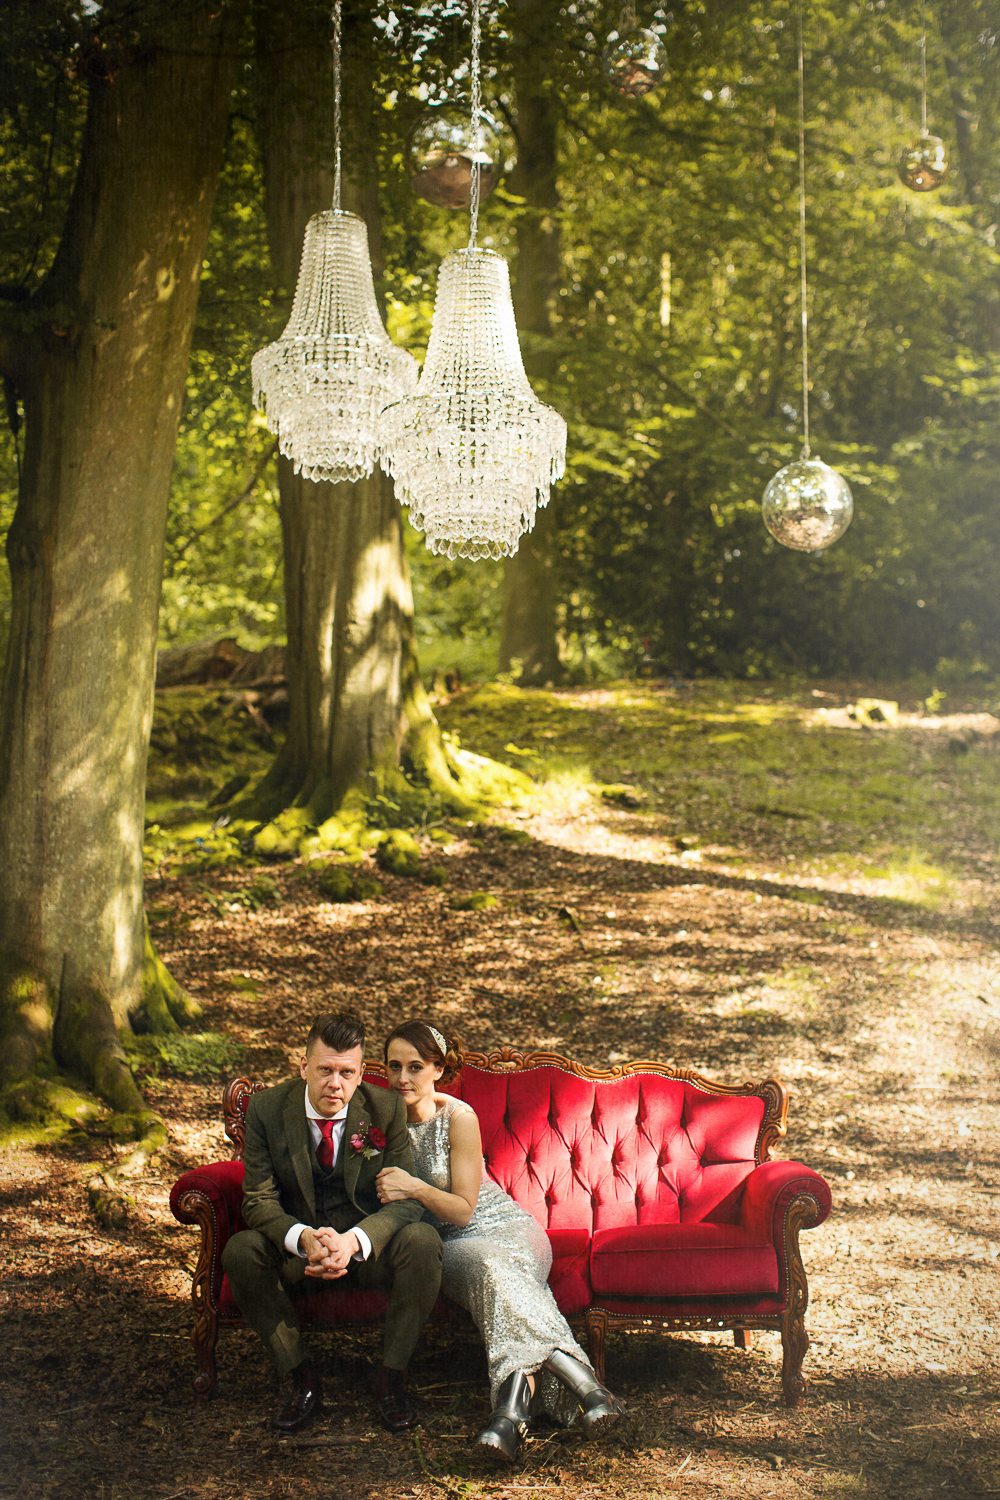 Pocketful of Dreams_matt parry photography_Red velvet furniture_chandeliers_tom Dixon Lights_outdoor_woodland_cool couple